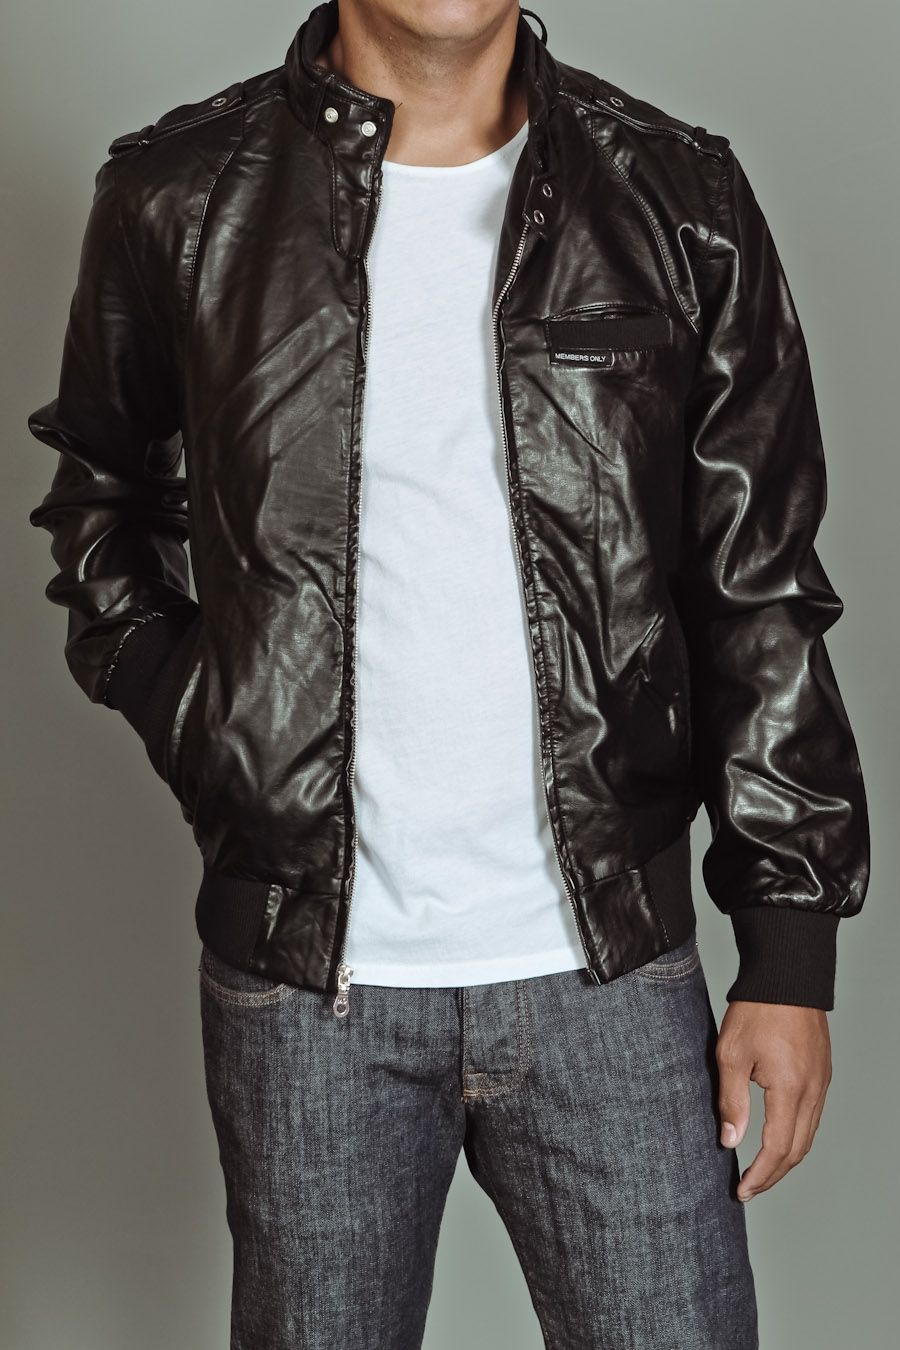 Members only leather jacket for sale